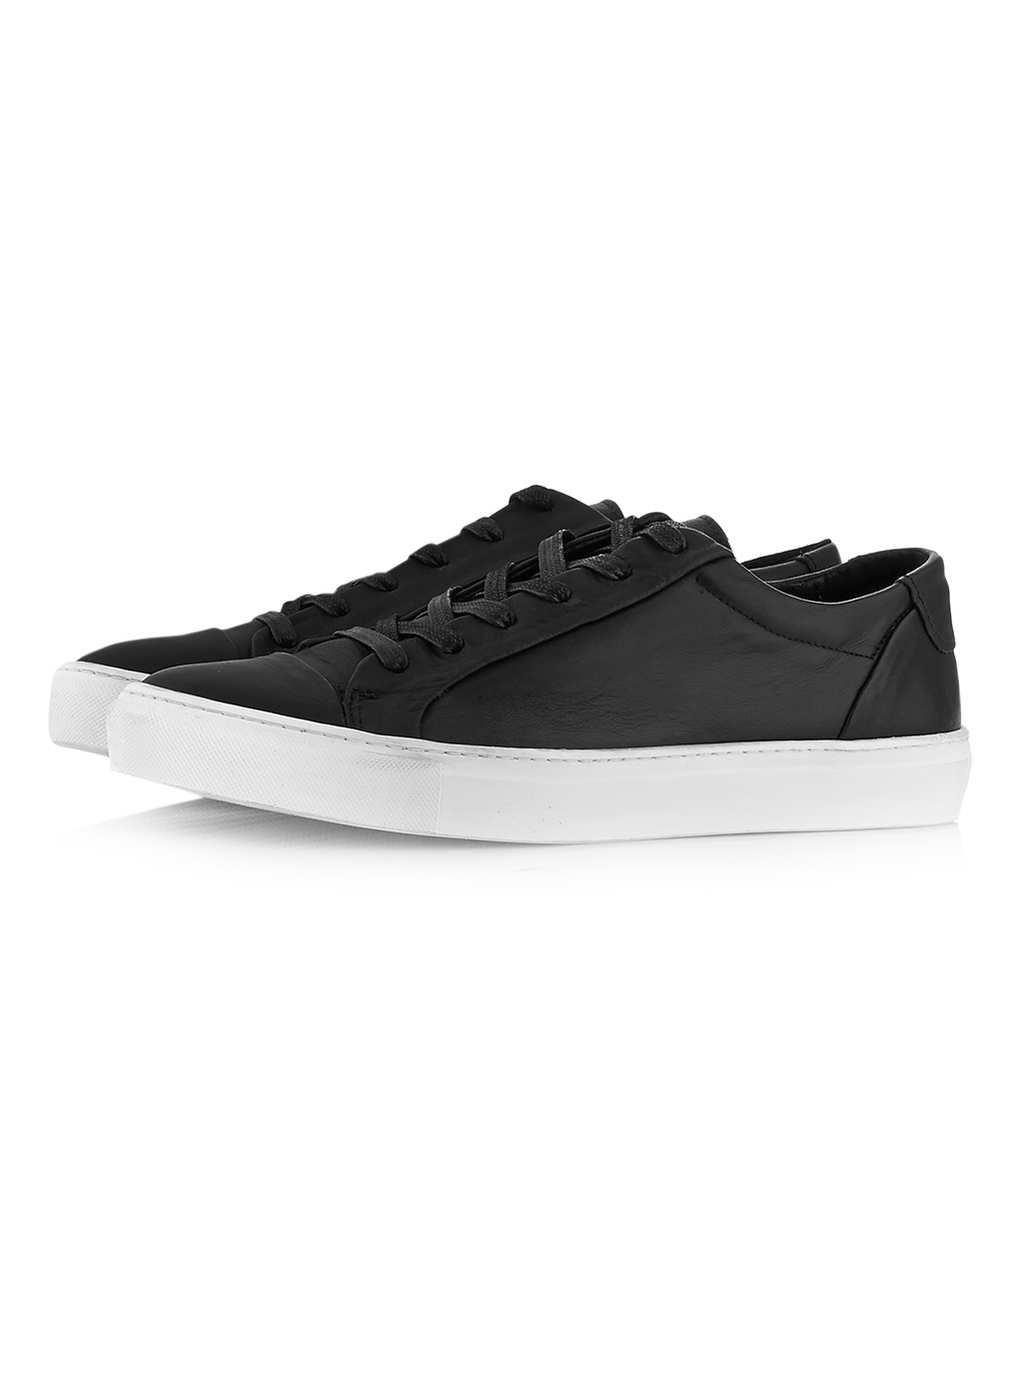 Tux Black Leather Tennis Shoes - Plimsolls & Trainers - Shoes and Accessories - TOPMAN